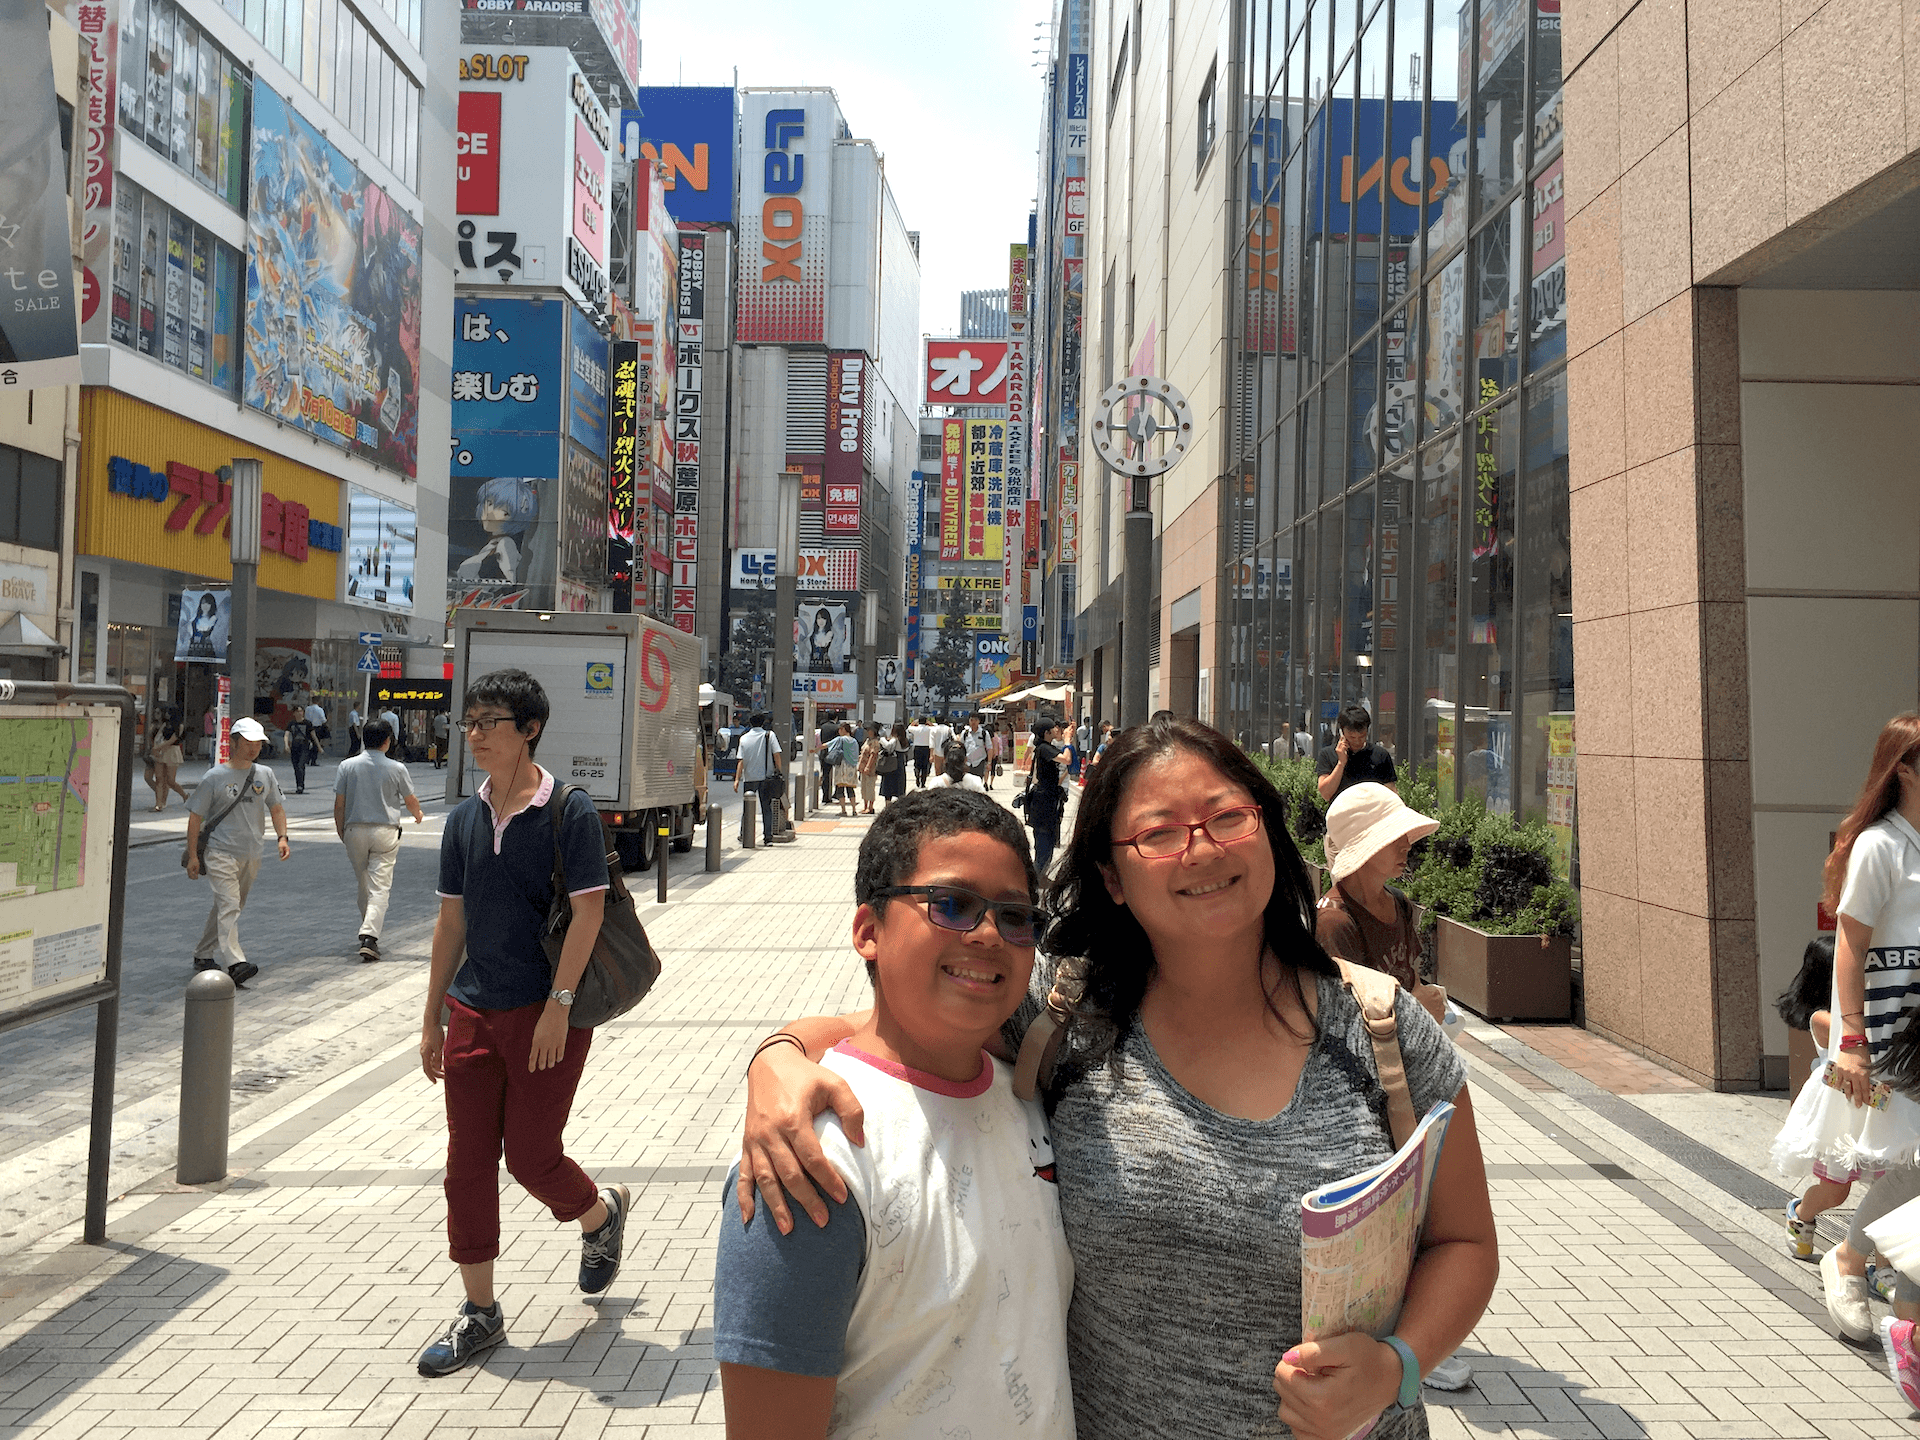 Questions - Walking Around Akihabara Tokyo What To Do 2018 - Loot Anime Discount Code 2018 🇯🇵 🏙 📦